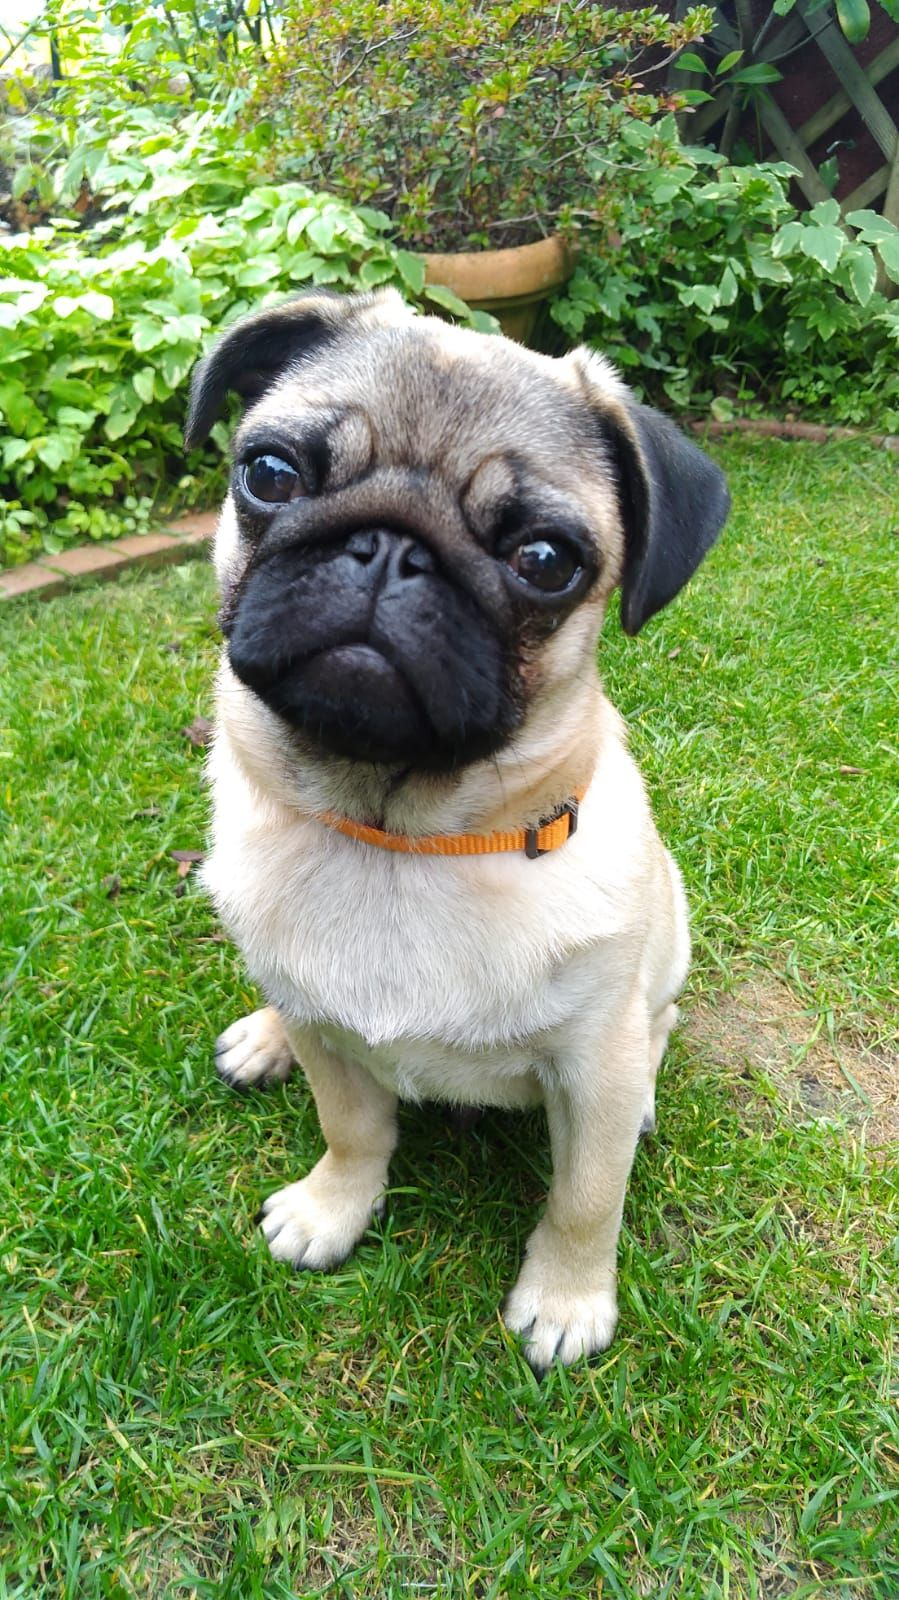 Pin By Melissa On Pug Baby Pug Dog Cute Pugs Cute Baby Animals